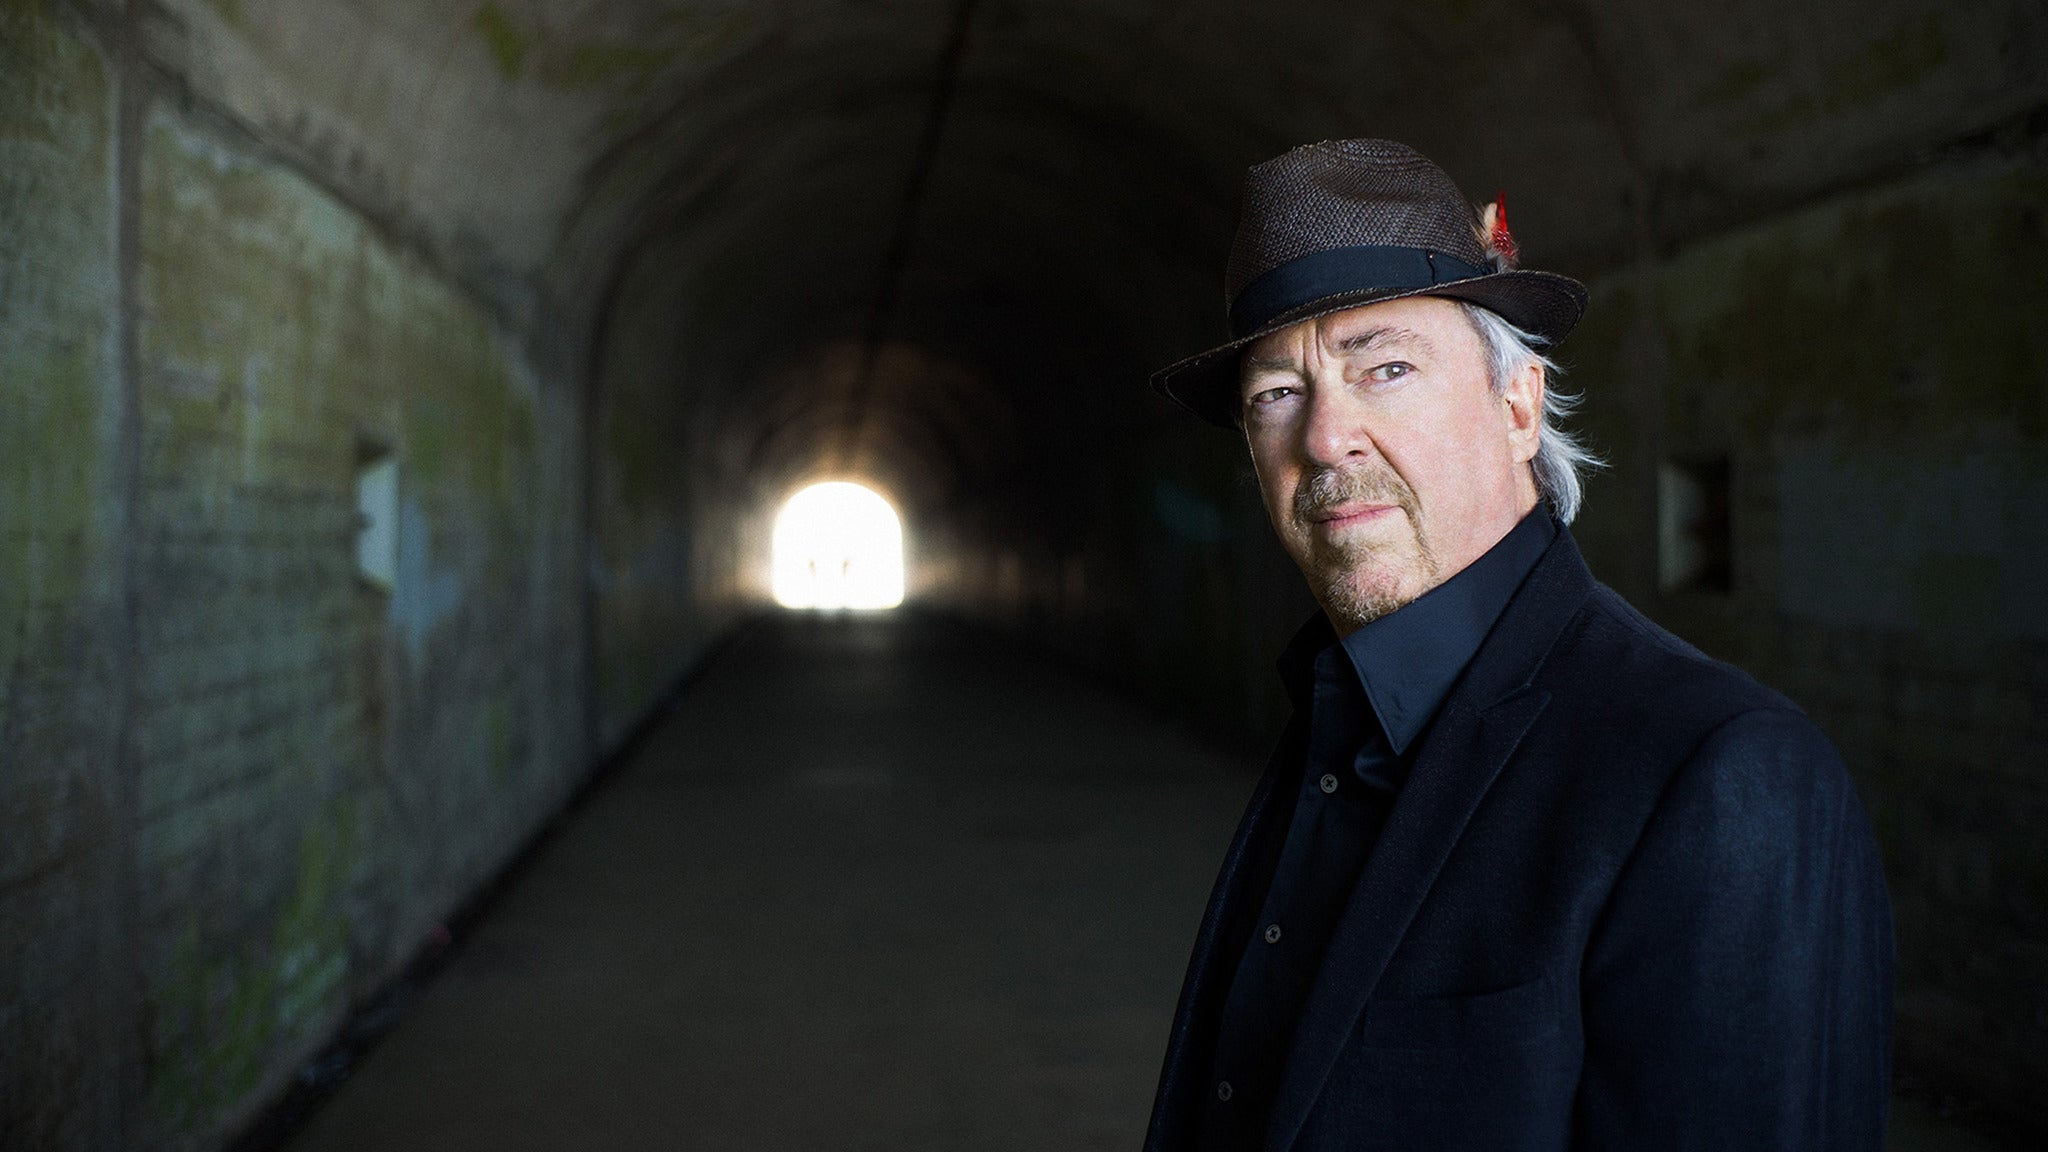 Boz Scaggs at Belly Up - Aspen, CO 81611